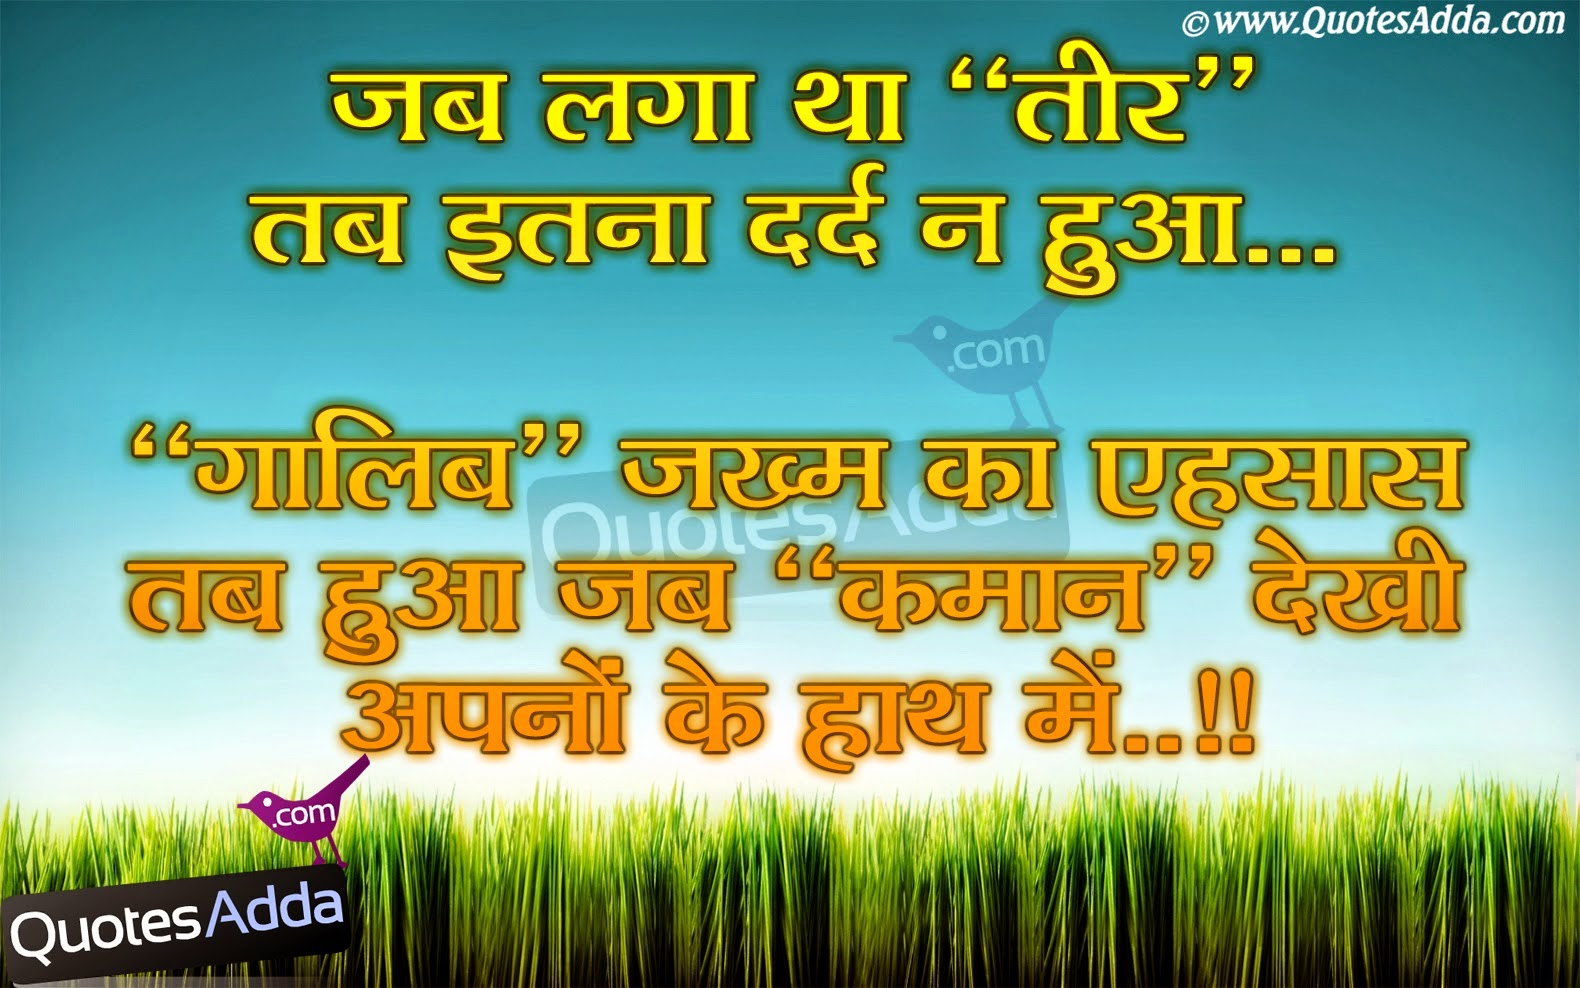 Dosti shayari in hindi with wallpaper